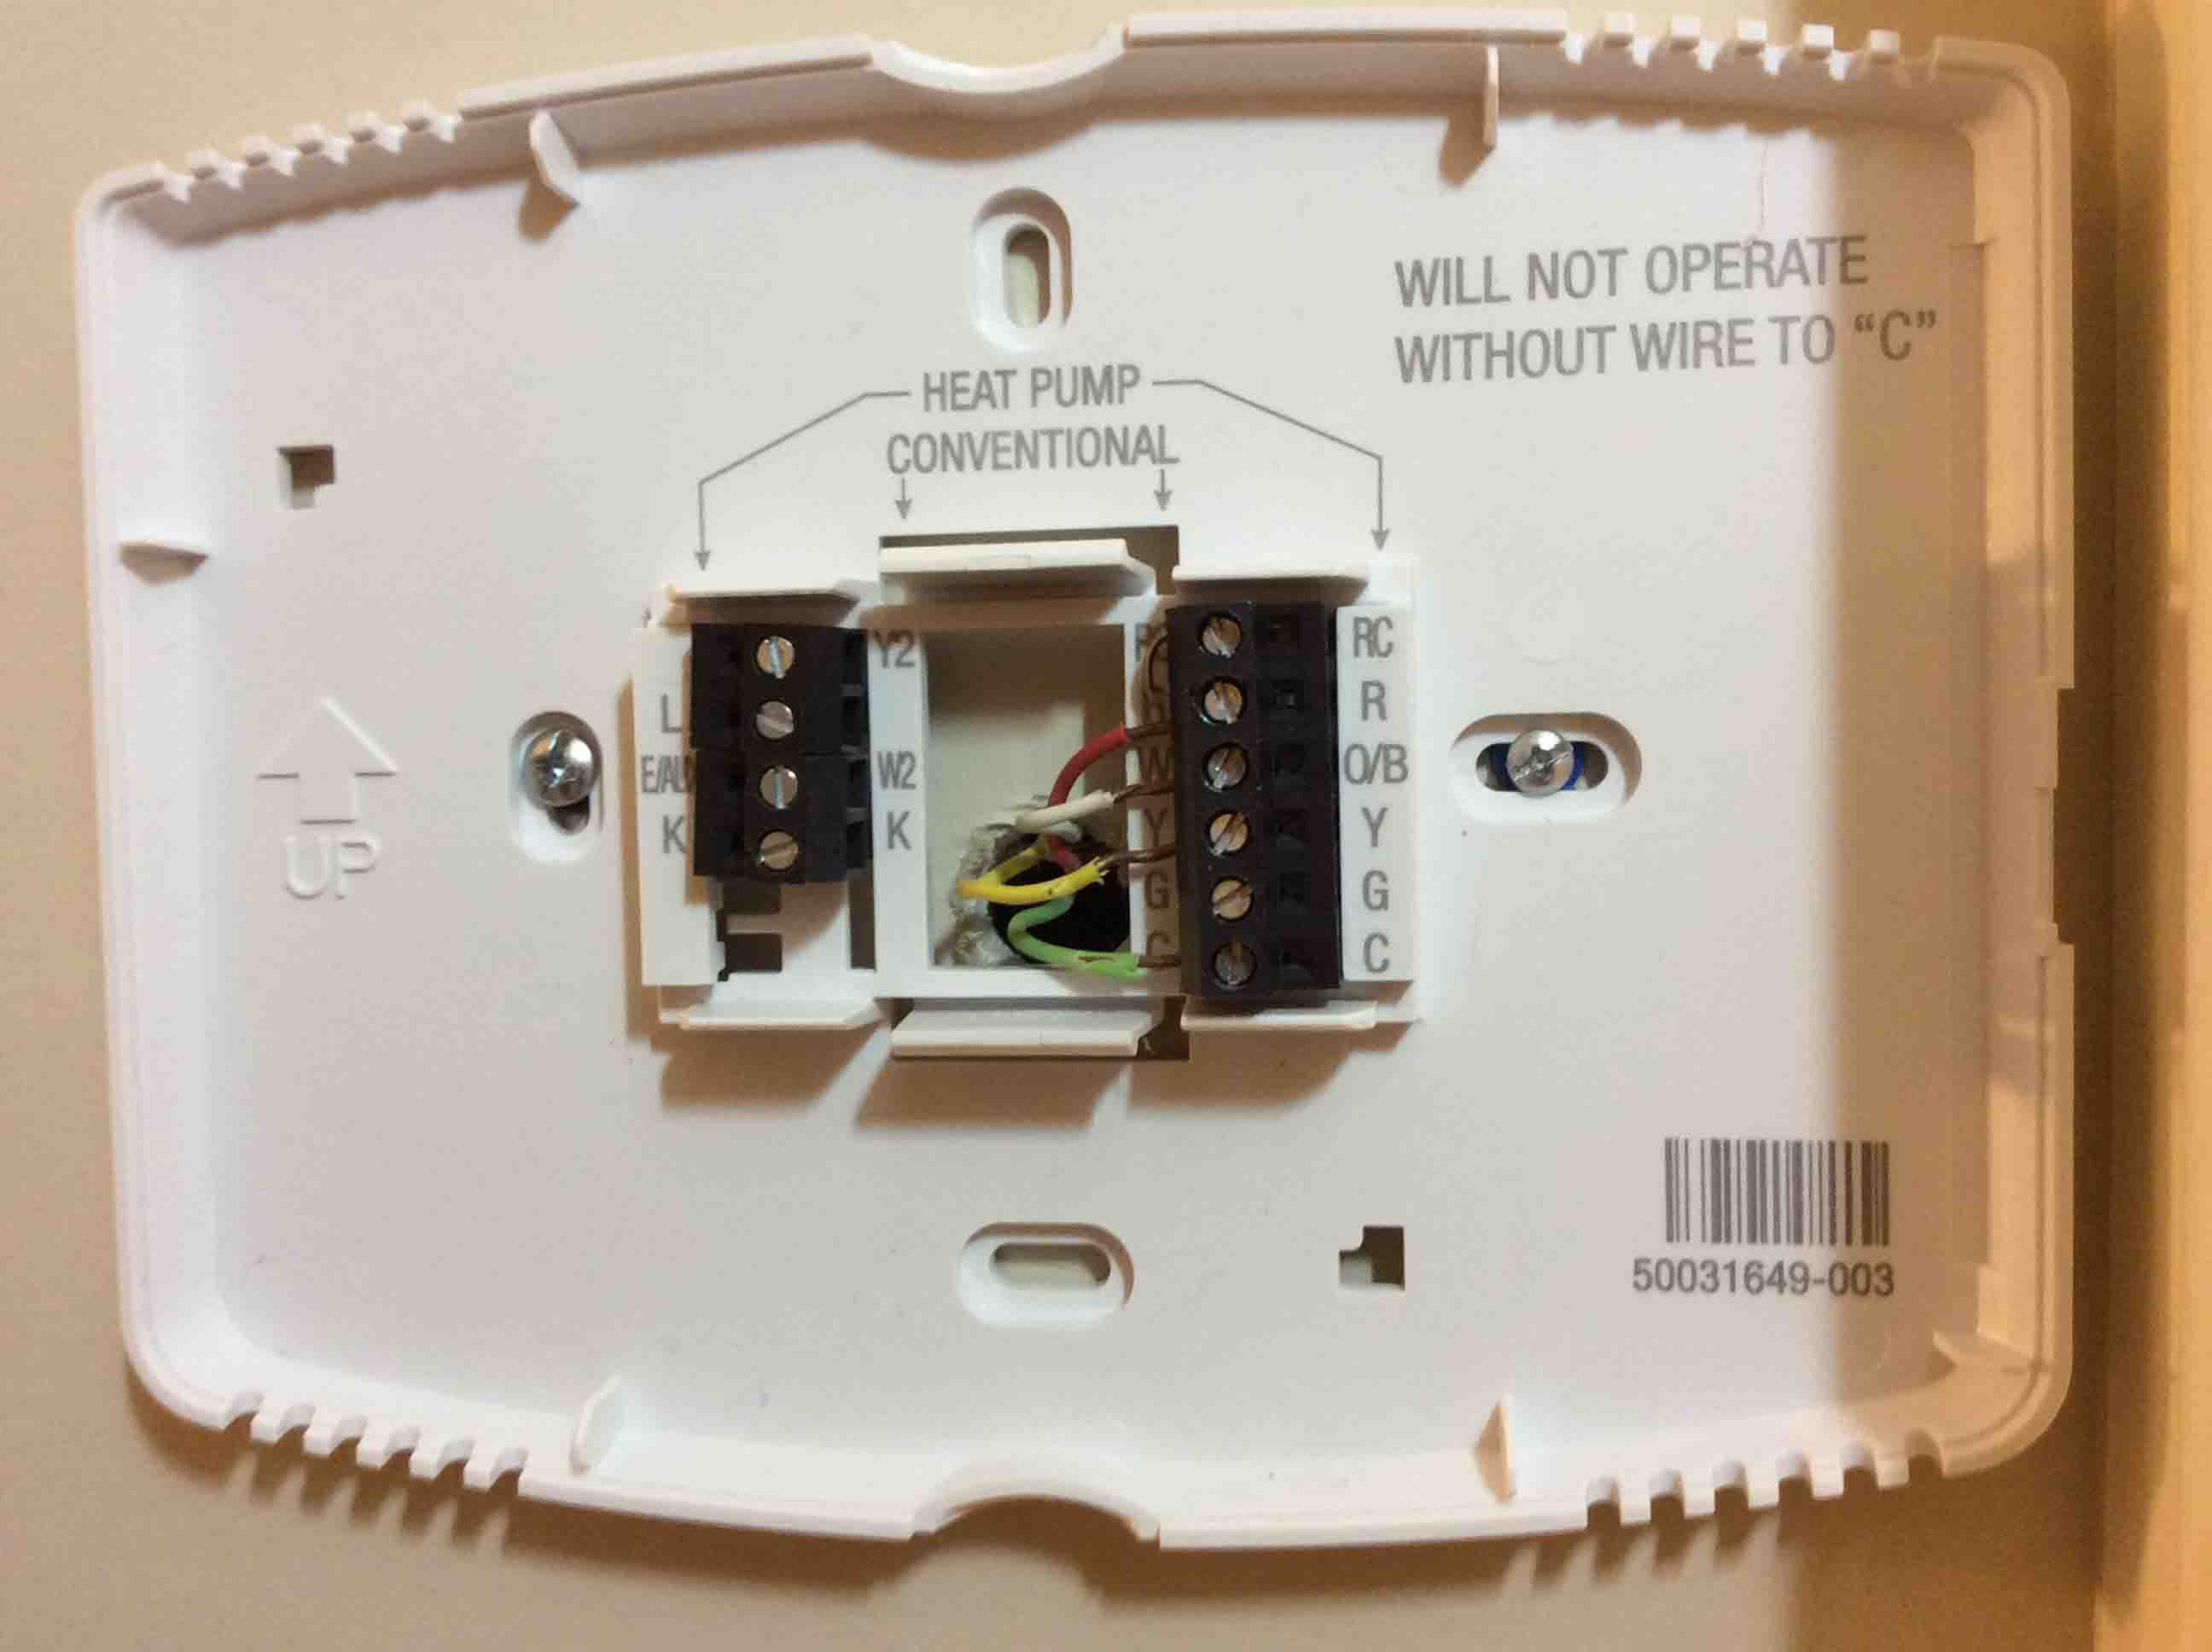 Honeywell Rth9580Wf Thermostat Wiring Diagram | Wiring Library - Honeywell Rth9580Wf Wiring Diagram